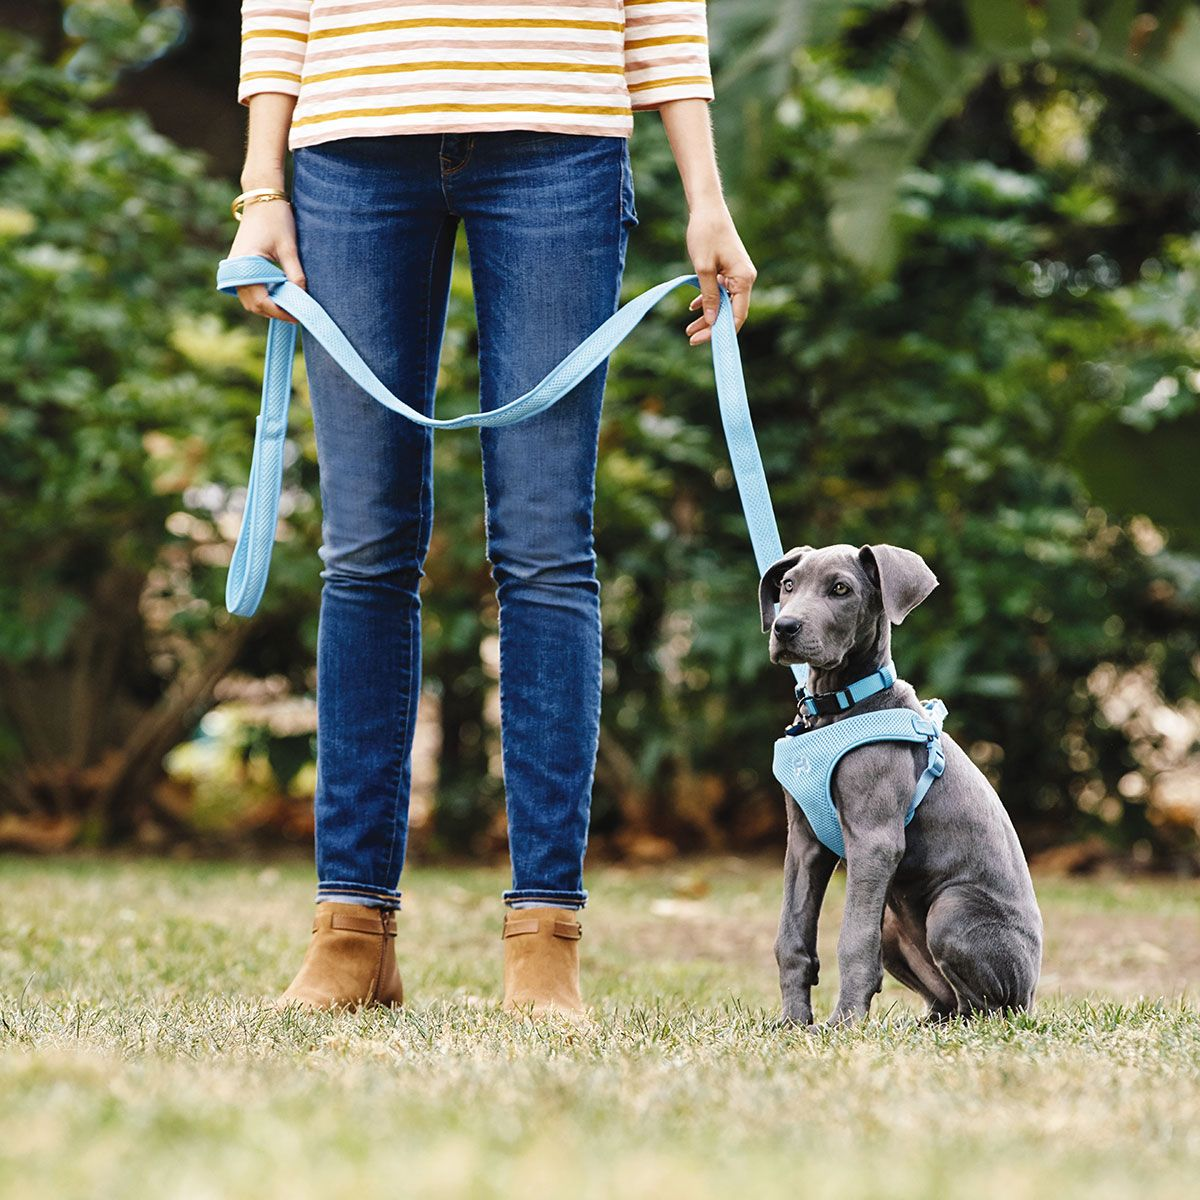 Shop our new Convertible Rope Leashes! Buttery soft, hand